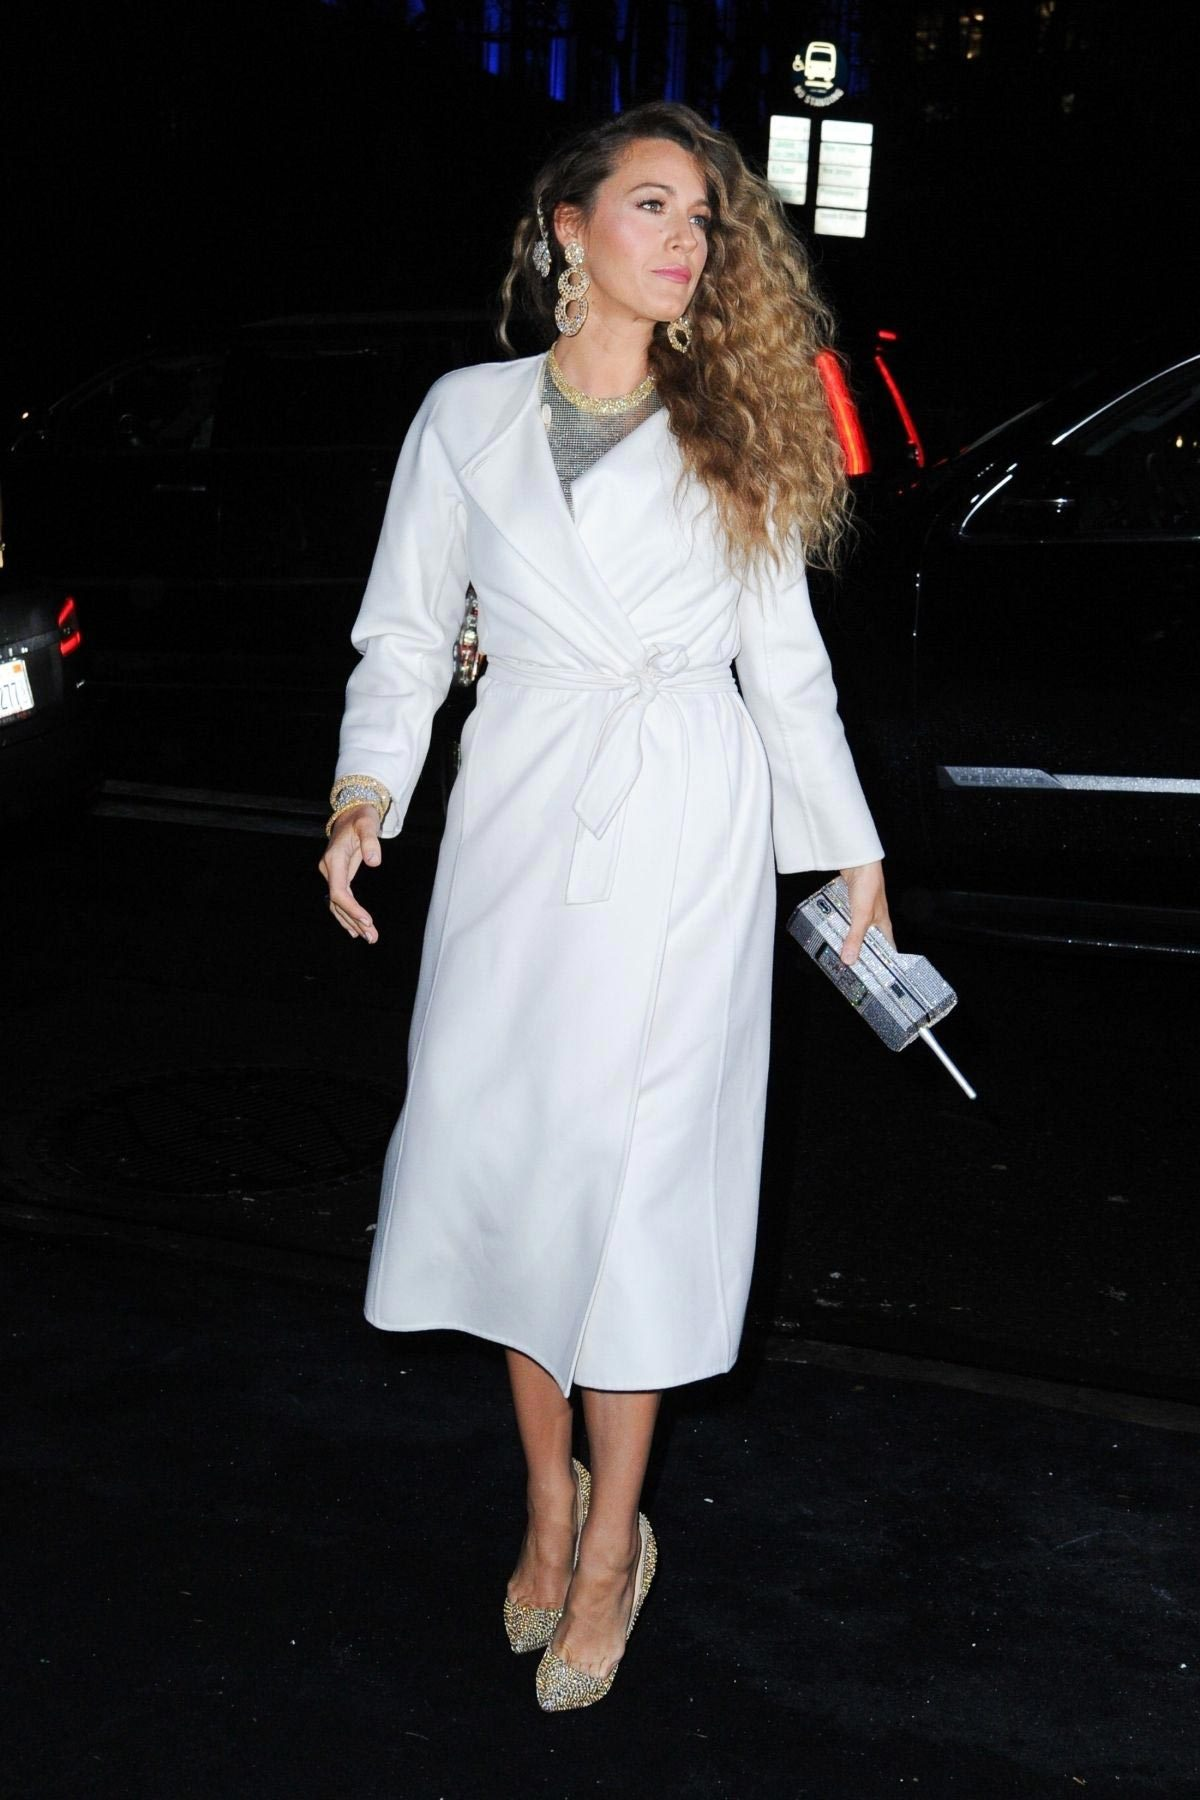 Blake Lively Arrives at Versace Fashion Show in New York 2018/12/02 1